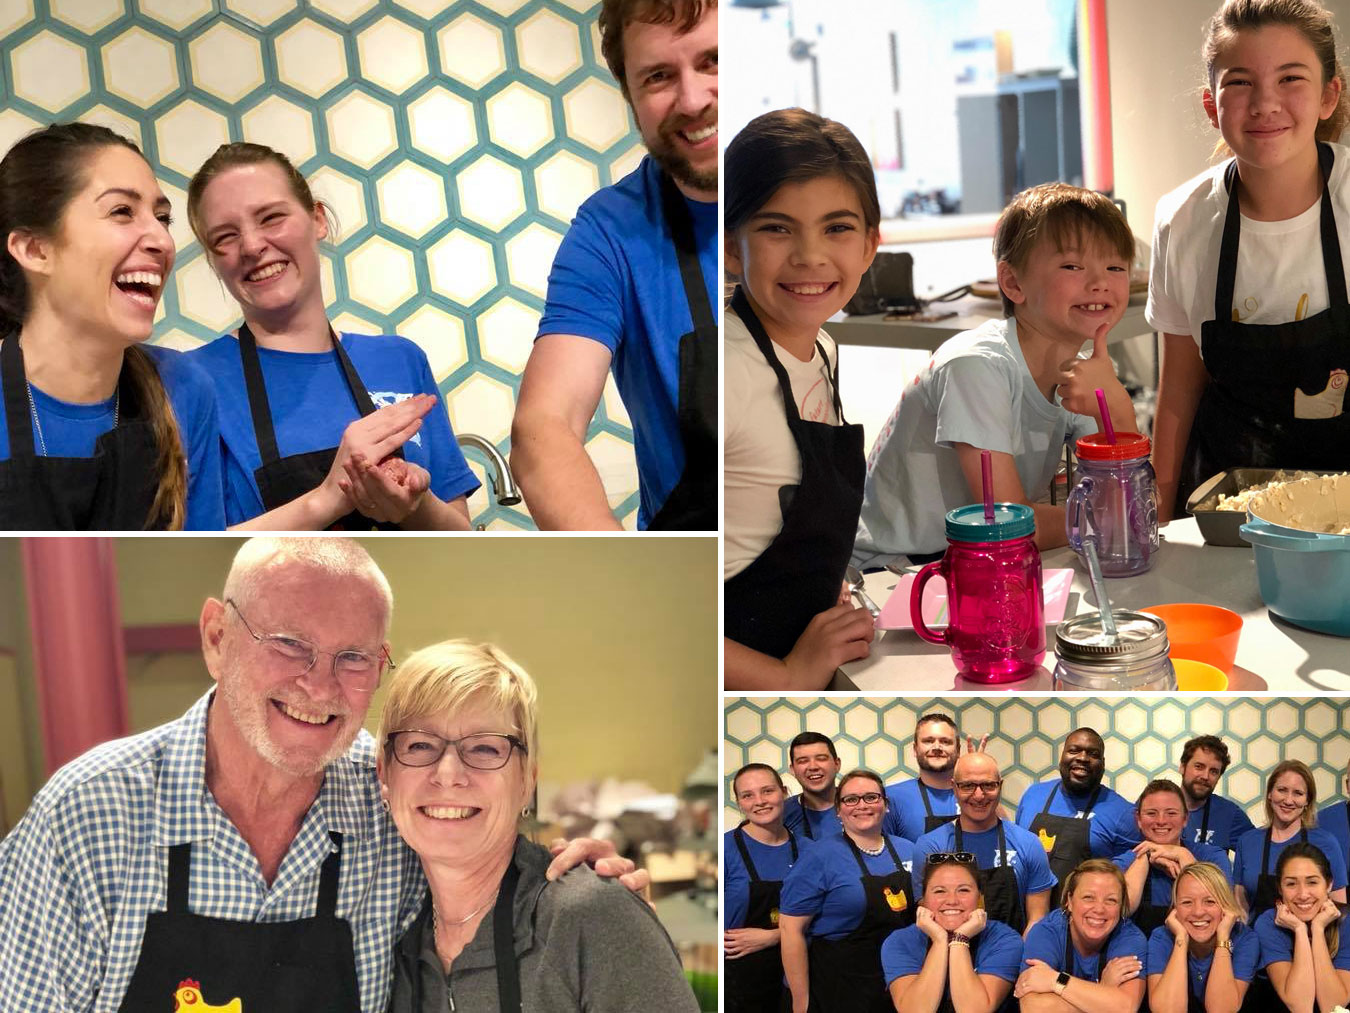 Collage of Participants in Cooking Classes at Kitchen Chick